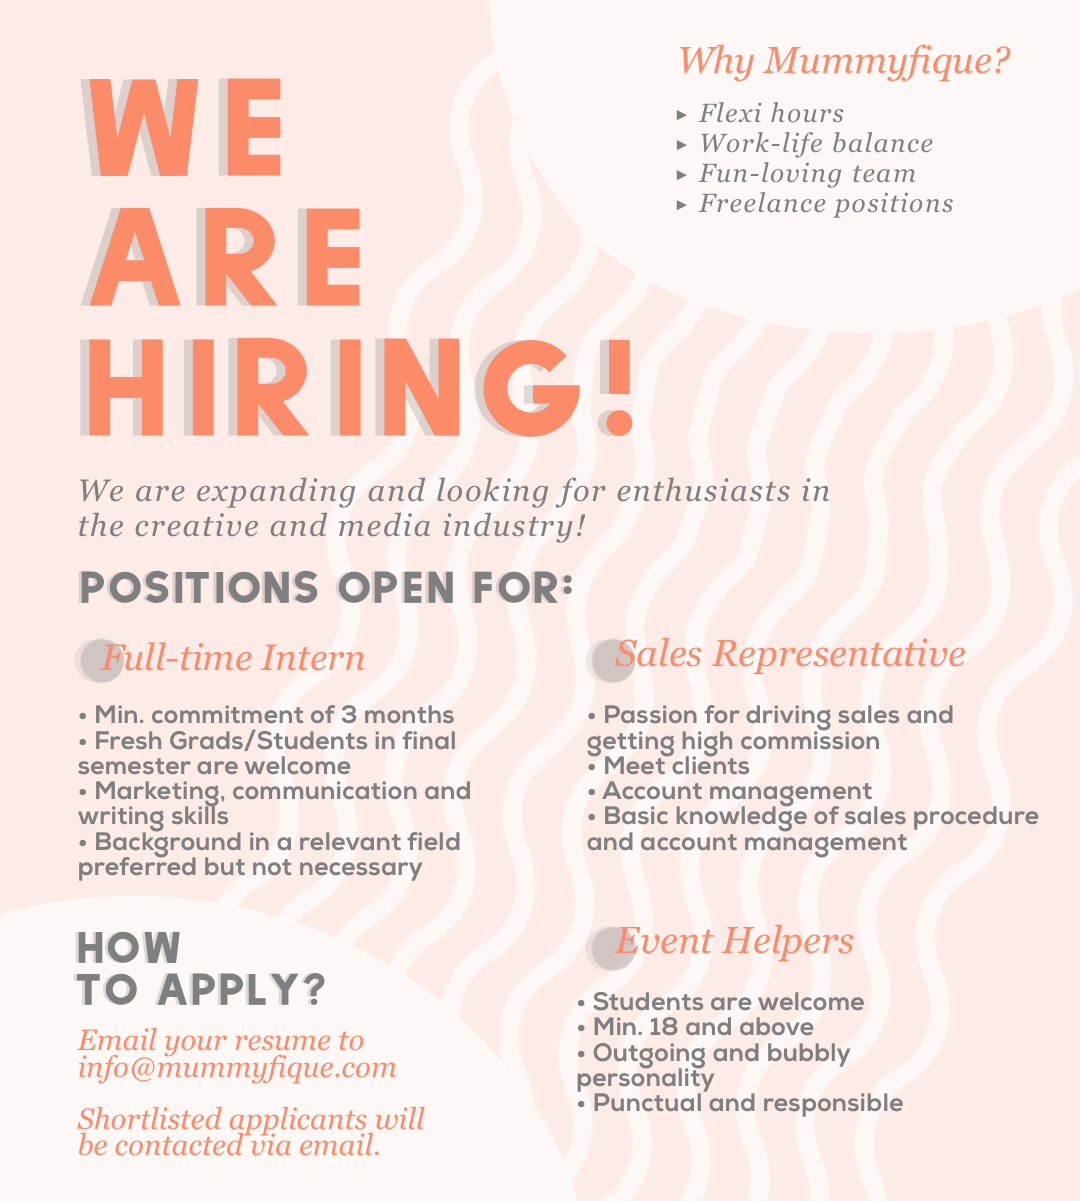 Mummyfique – We are hiring